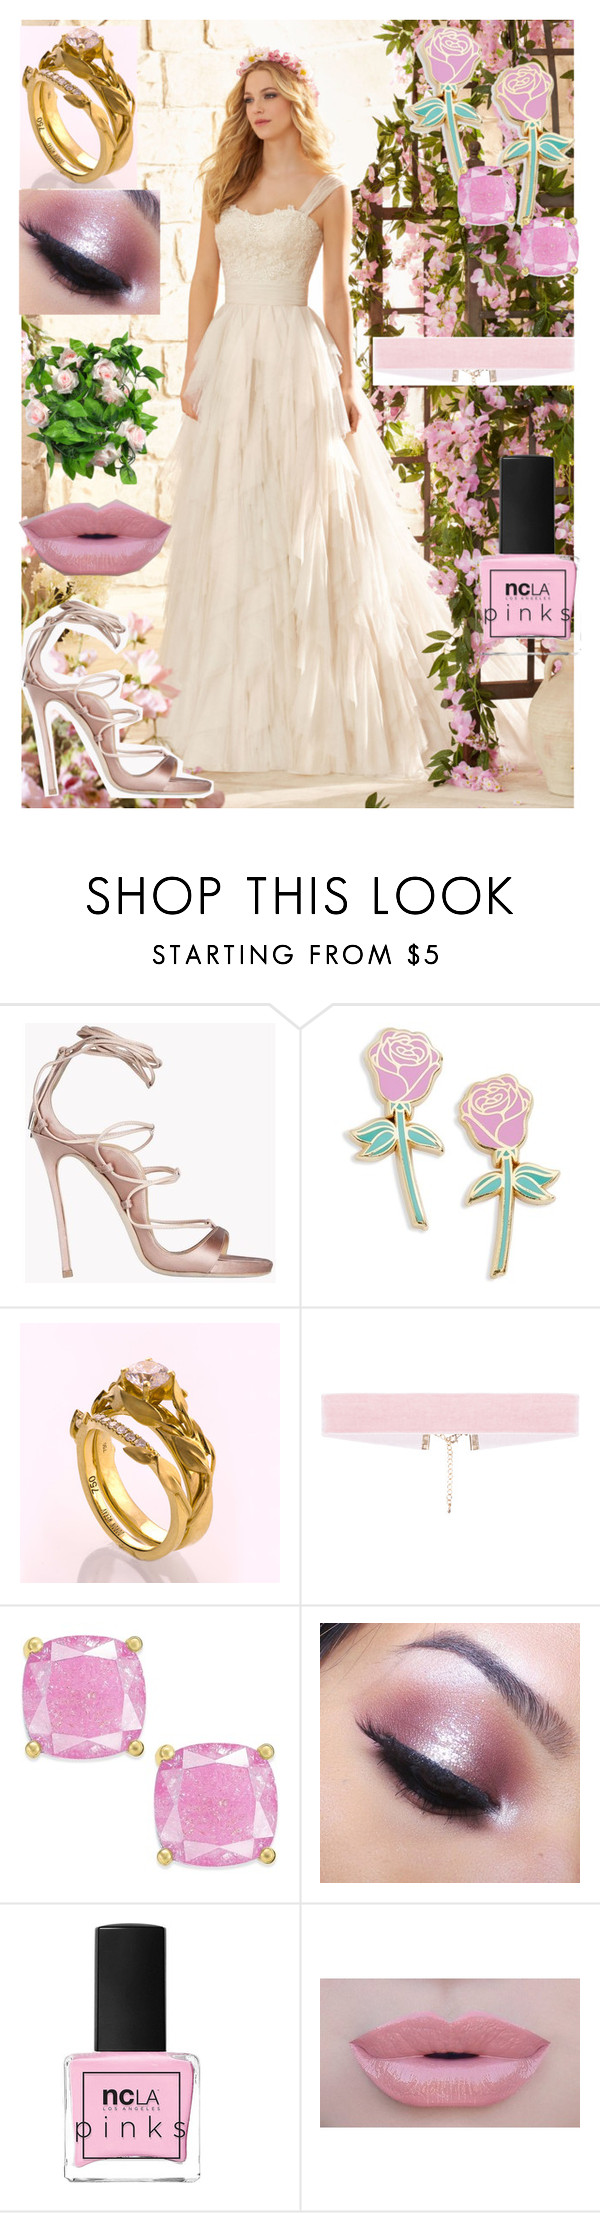 """""""Wedding #7- Pretty Pink Princess (Elijah)"""" by wherethewldthngsr ❤ liked on Polyvore featuring Dsquared2, Big Bud Press, Kate Spade, Too Faced Cosmetics, ncLA and Morphe"""